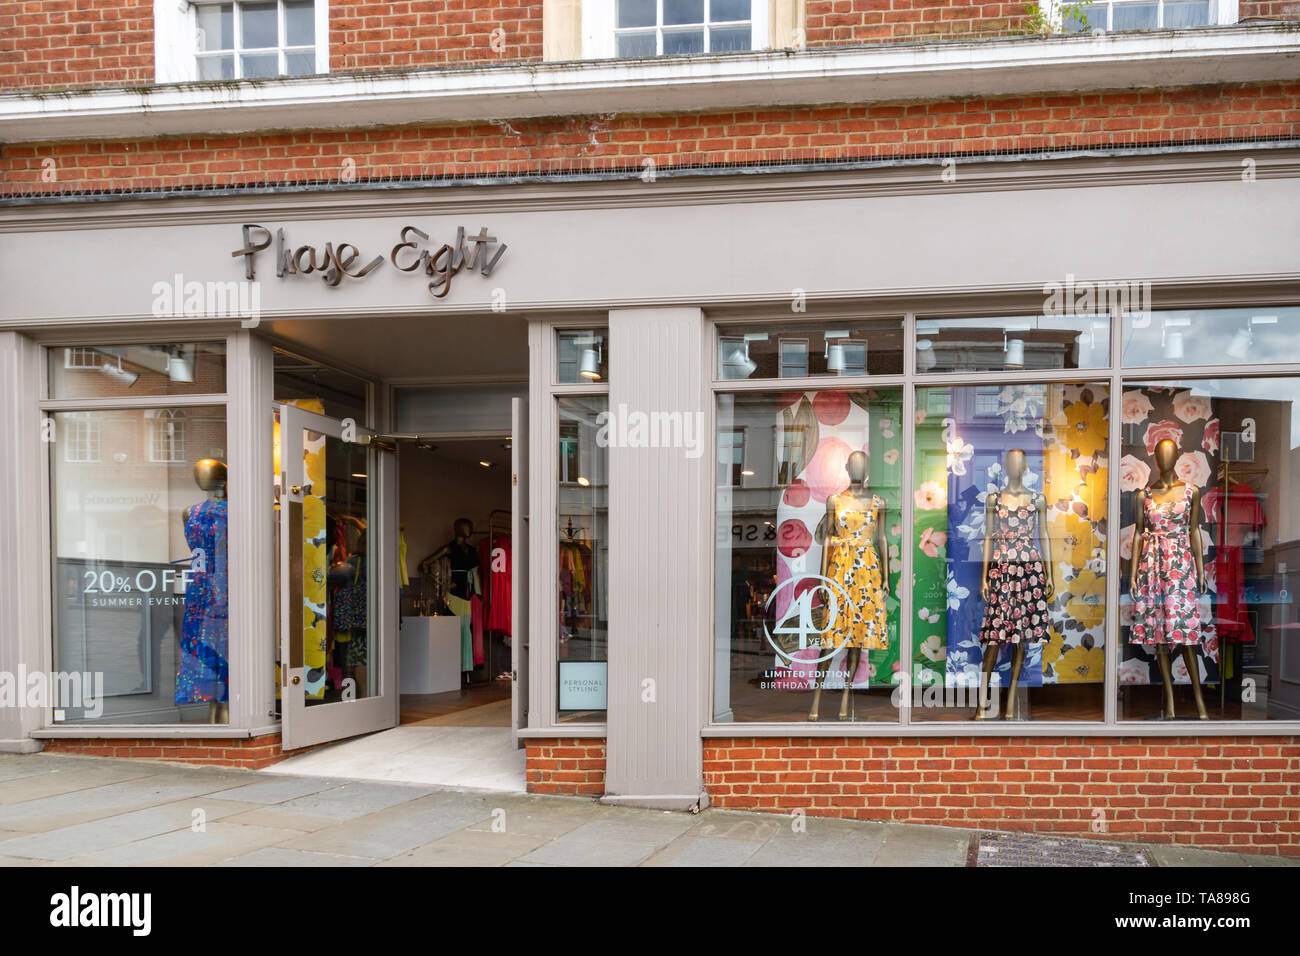 Womens Clothes In A Shop Window Display High Resolution Stock Photography And Images Alamy